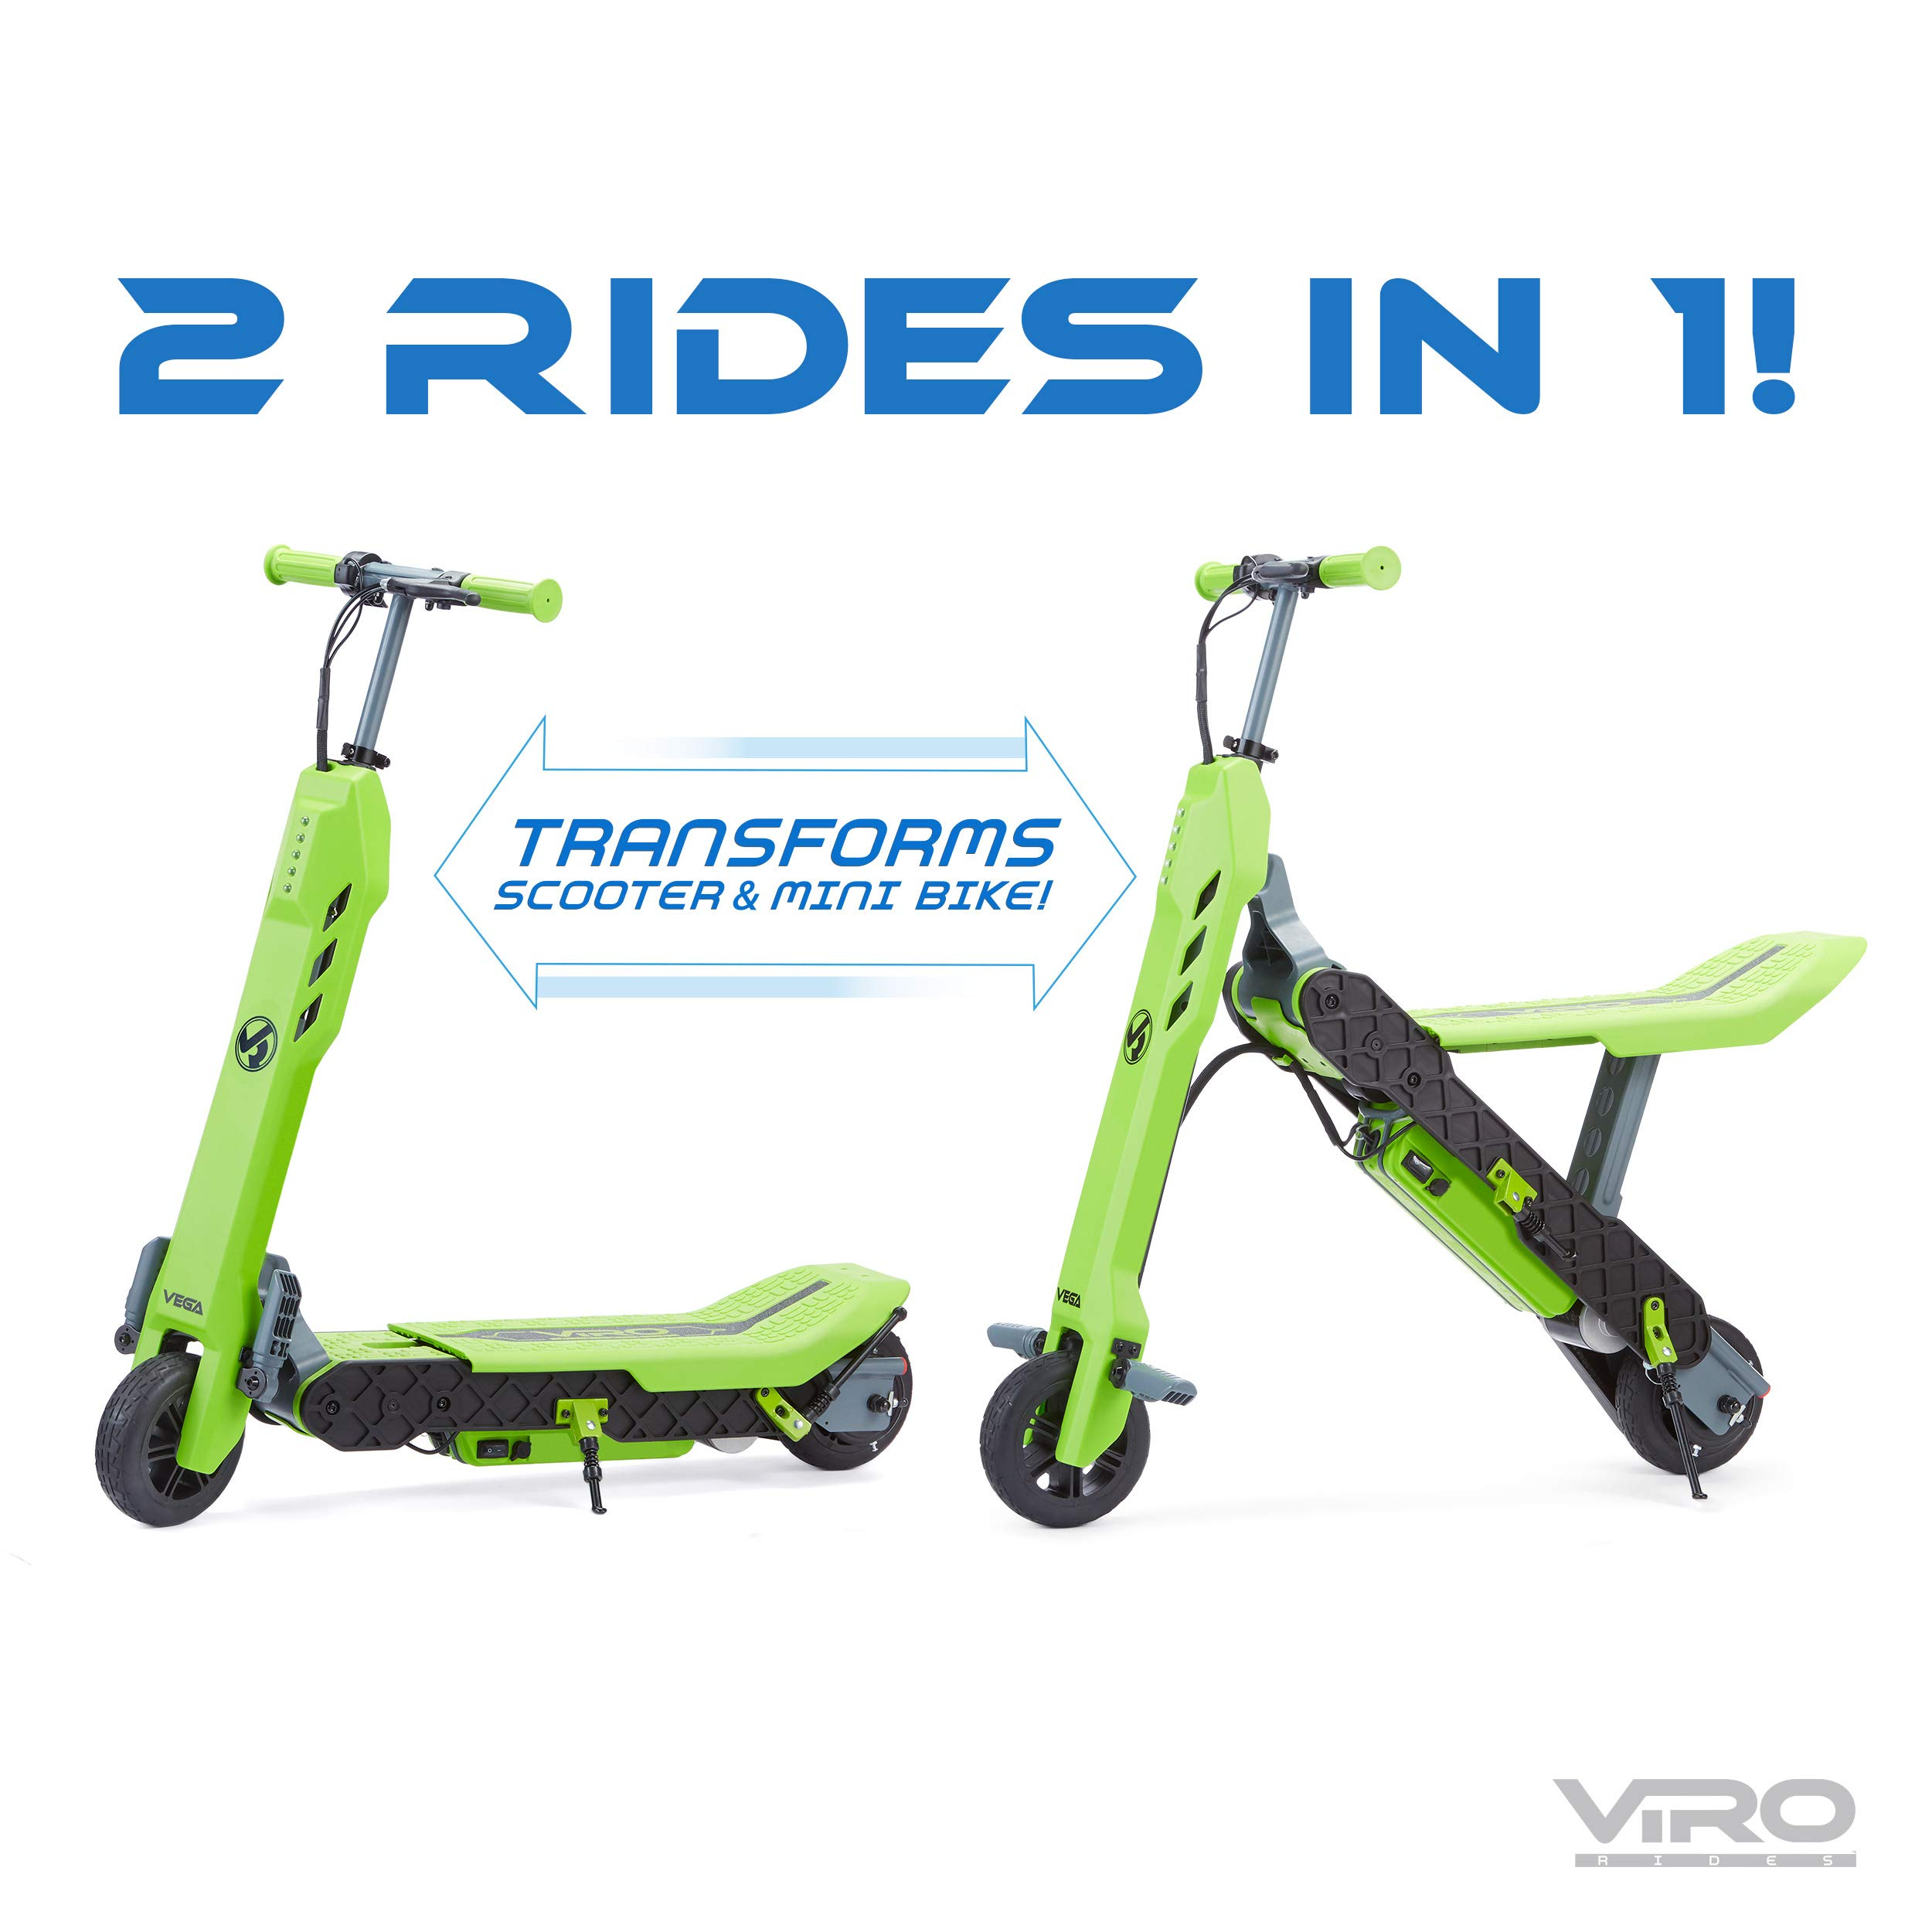 Viro Rides Vega Transforming 2-in-1 Electric Scooter and Mini Bike UL 2272 Certified by Viro Rides (Image #2)